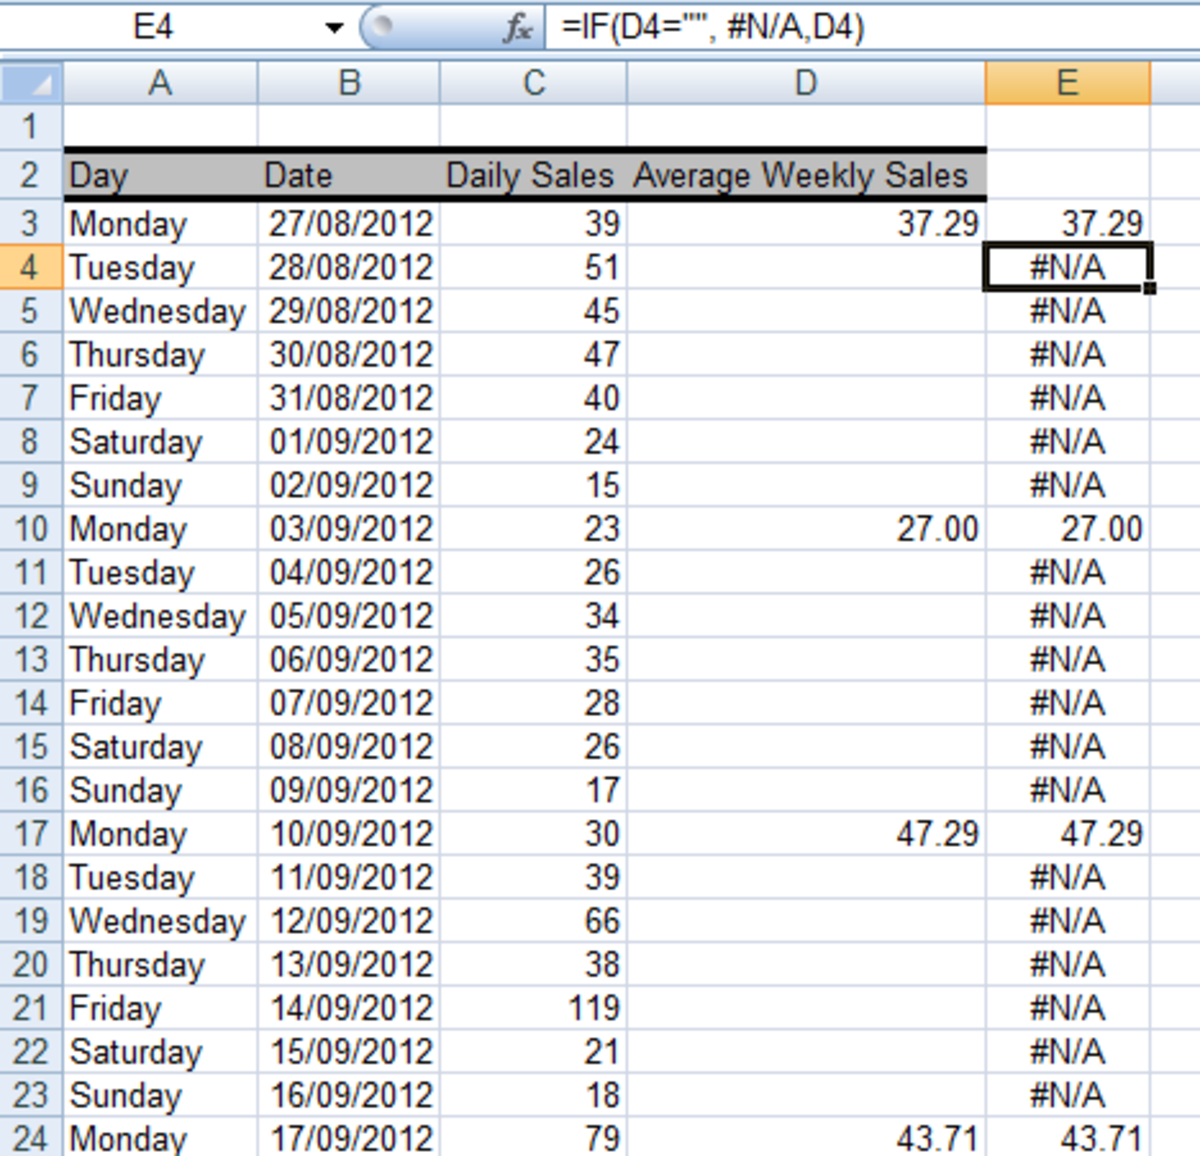 Ediblewildsus  Surprising How To Get Excel  And  To Ignore Empty Cells In A Chart Or  With Lovable Using The If Function In A Formula To Convert Empty Cells To Na With Cool Right Function Excel Also Excel Images In Addition Excel Clustered Column Chart And How To Sort By Color In Excel As Well As Excel Unhide Additionally How To Transpose Data In Excel From Turbofuturecom With Ediblewildsus  Lovable How To Get Excel  And  To Ignore Empty Cells In A Chart Or  With Cool Using The If Function In A Formula To Convert Empty Cells To Na And Surprising Right Function Excel Also Excel Images In Addition Excel Clustered Column Chart From Turbofuturecom